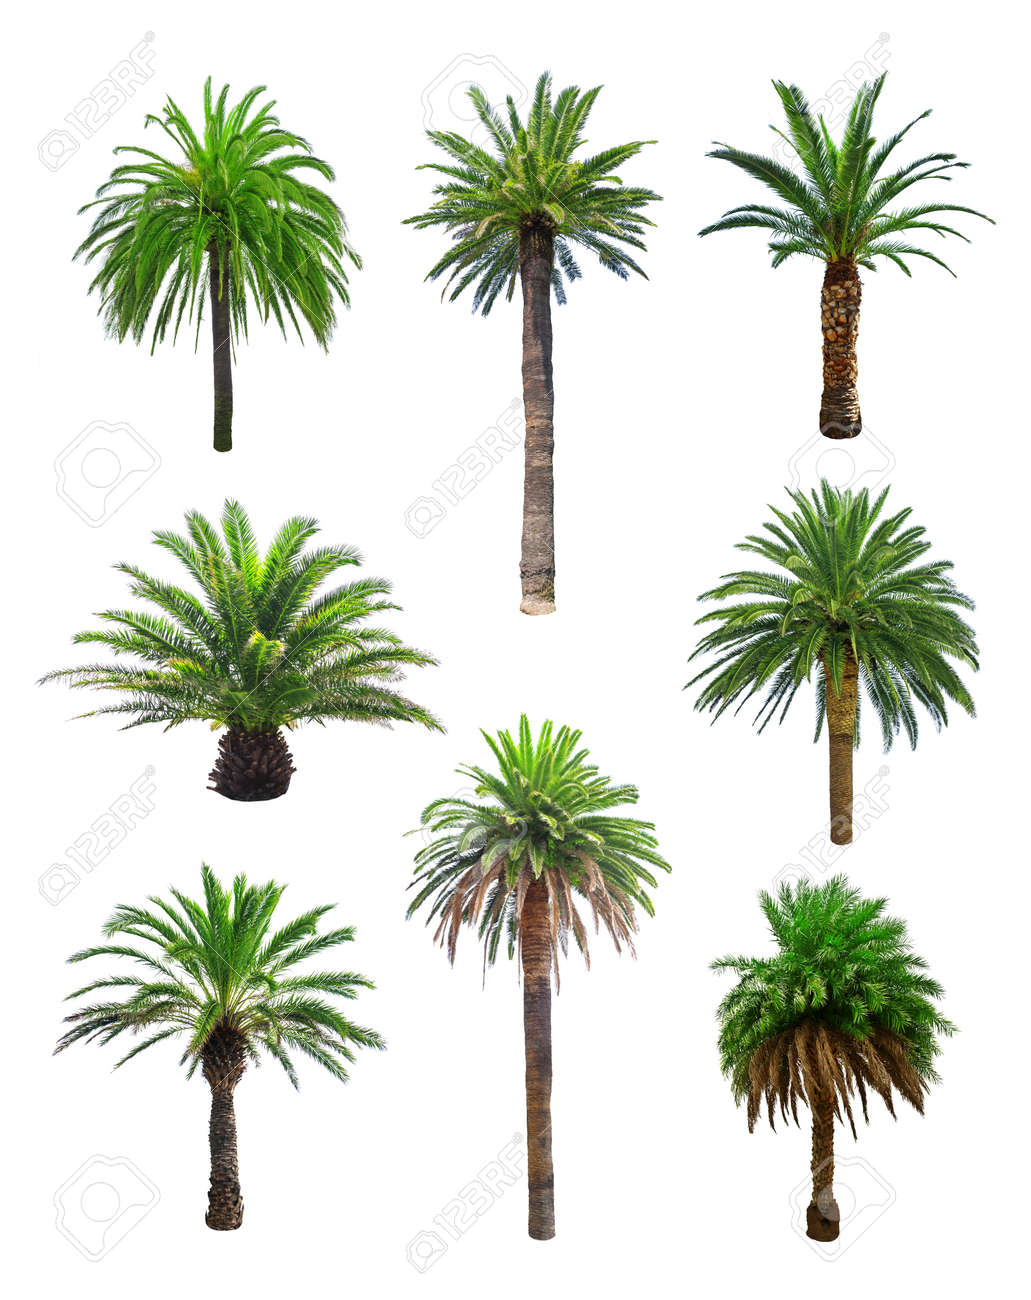 palm tree isolated on white - 31733743